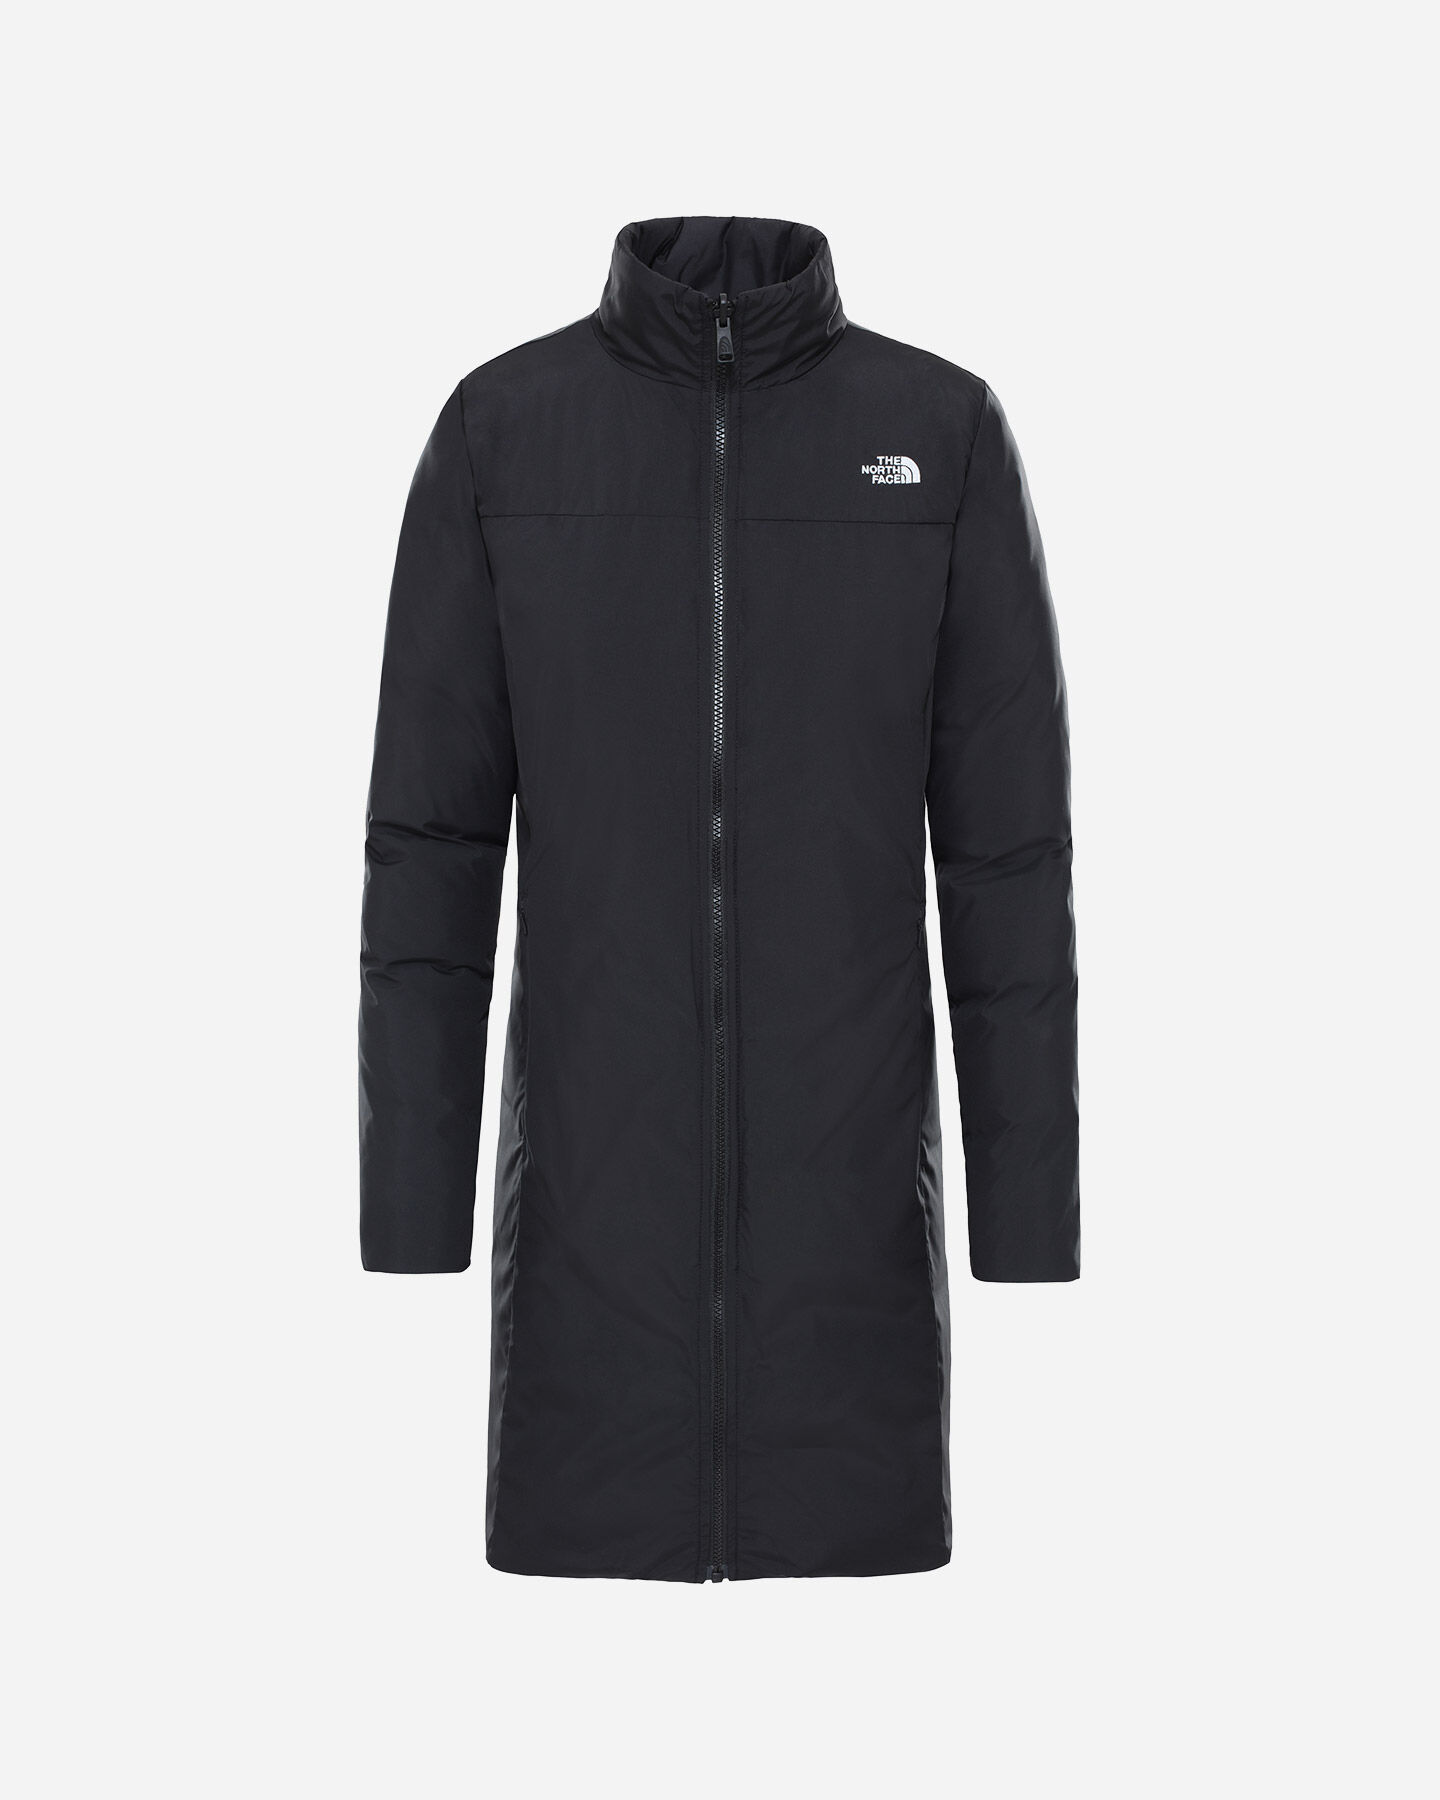 Giacca THE NORTH FACE SUZANNE TRICLIMATE W S5243553 scatto 3